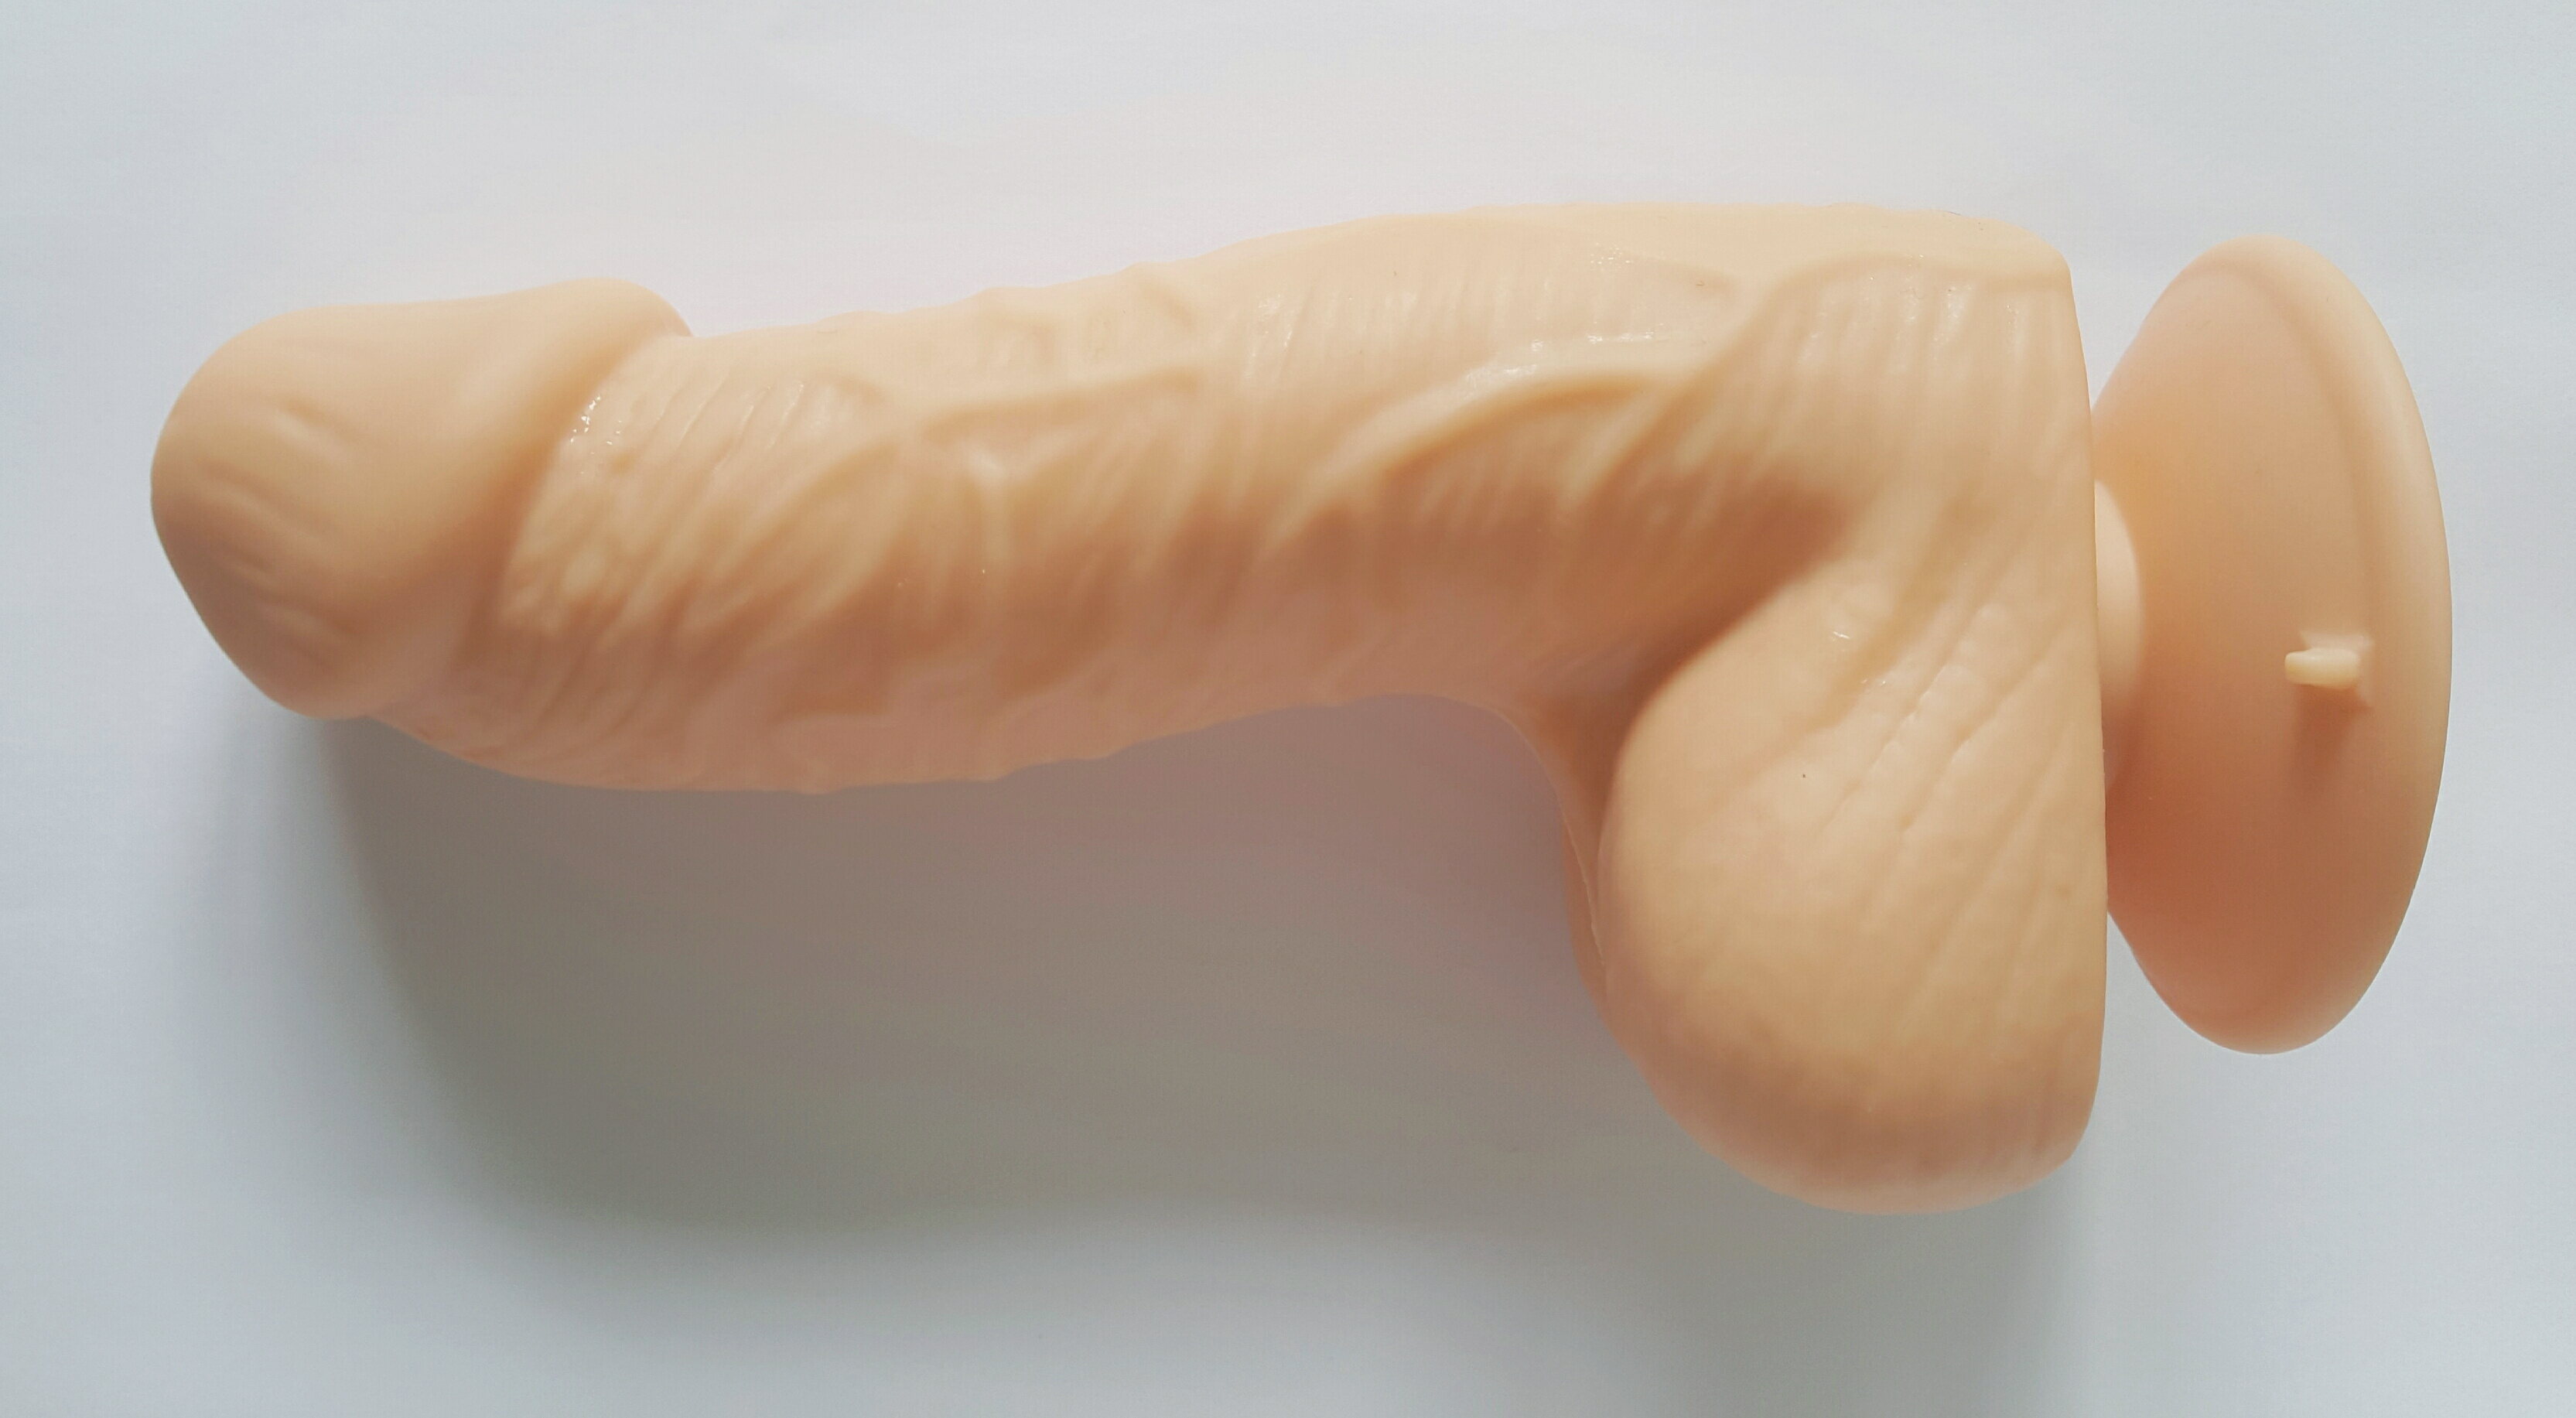 Review: You2Toys Masterpiece 6″ Dildo